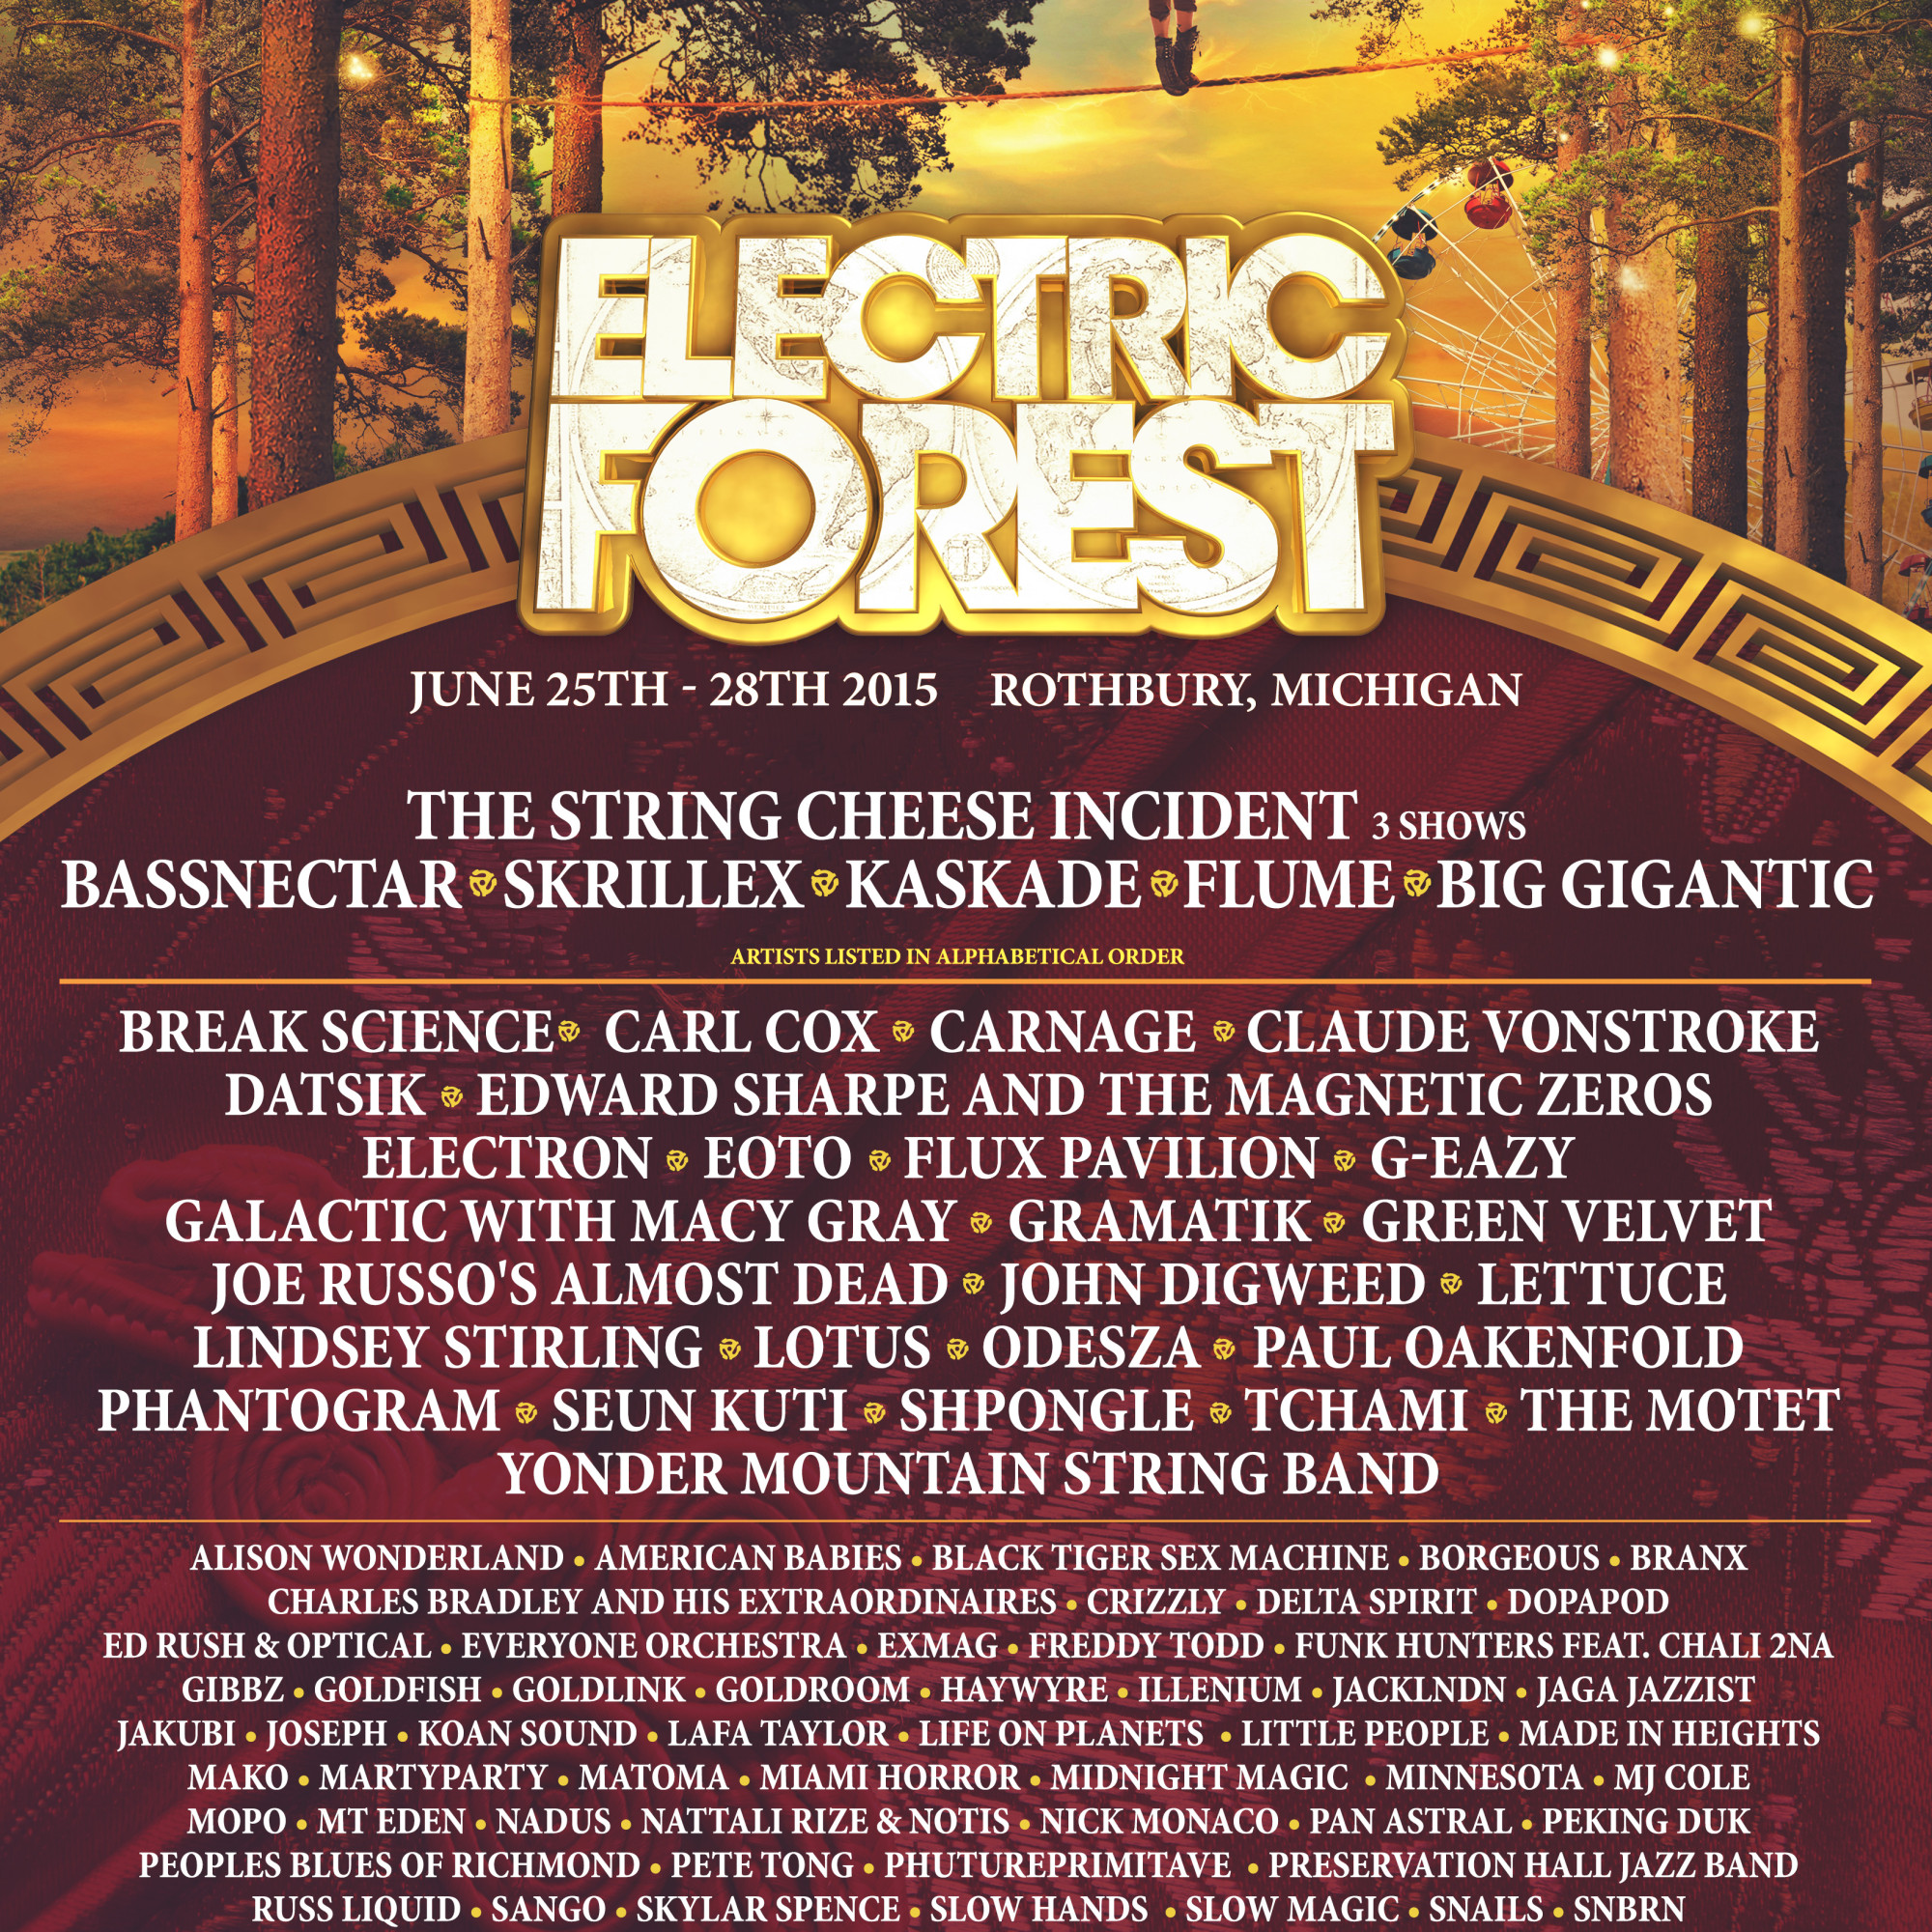 ElectricForest2015_Lineup_11x17-11-2000x2000